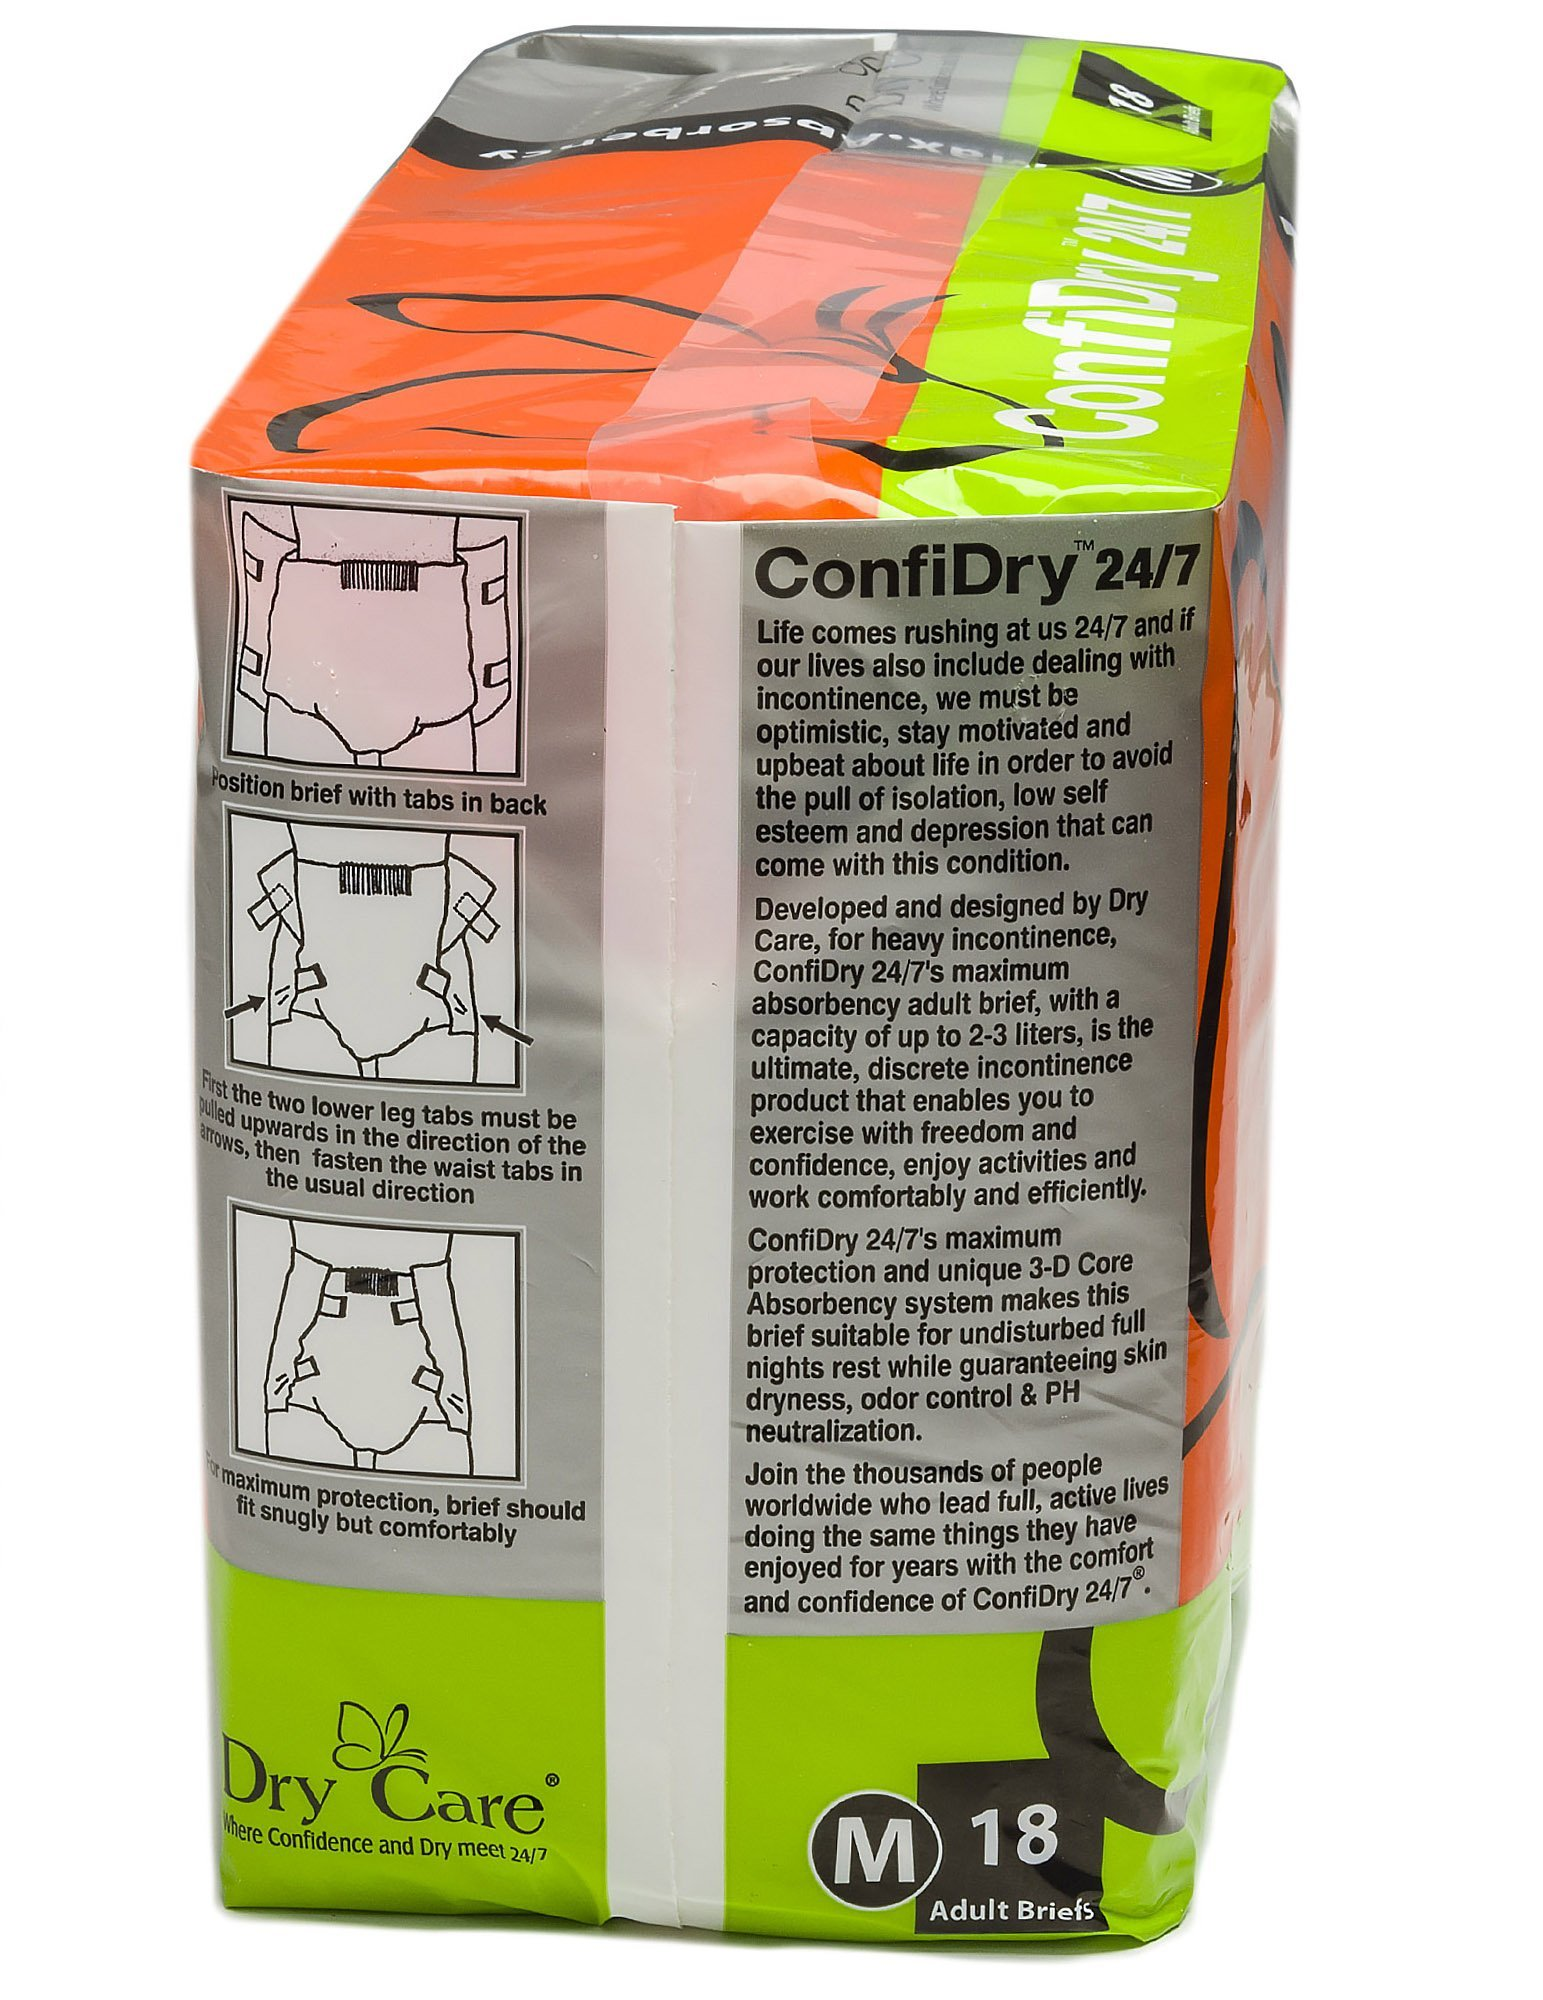 ConfiDry 24/7 Dry Care 24/7 Max AbsorbencyAdult Brief Diapers Case, Medium, 72 Count, Pack of 4